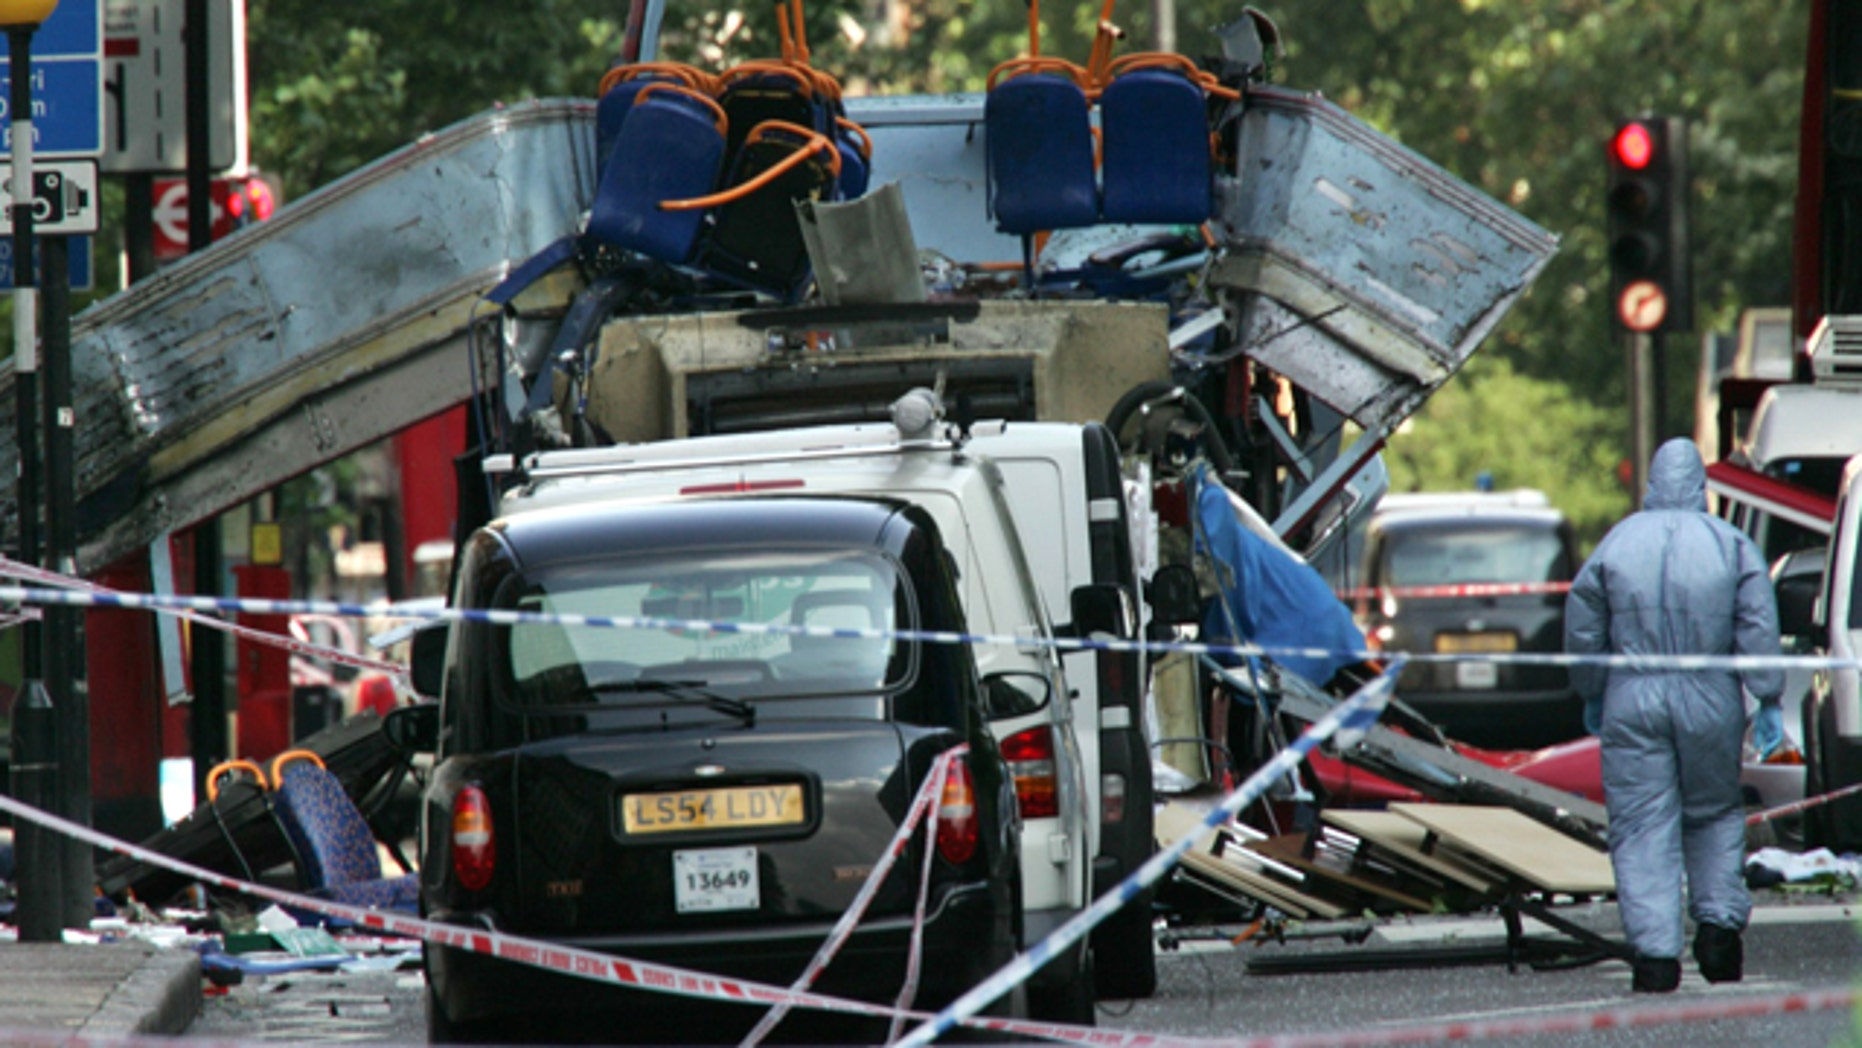 In this July 7, 2005 file photo, a forensic officer walks next to the wreckage of a double decker bus with its top blown off and damaged cars scattered on the road at Tavistock Square in central London.